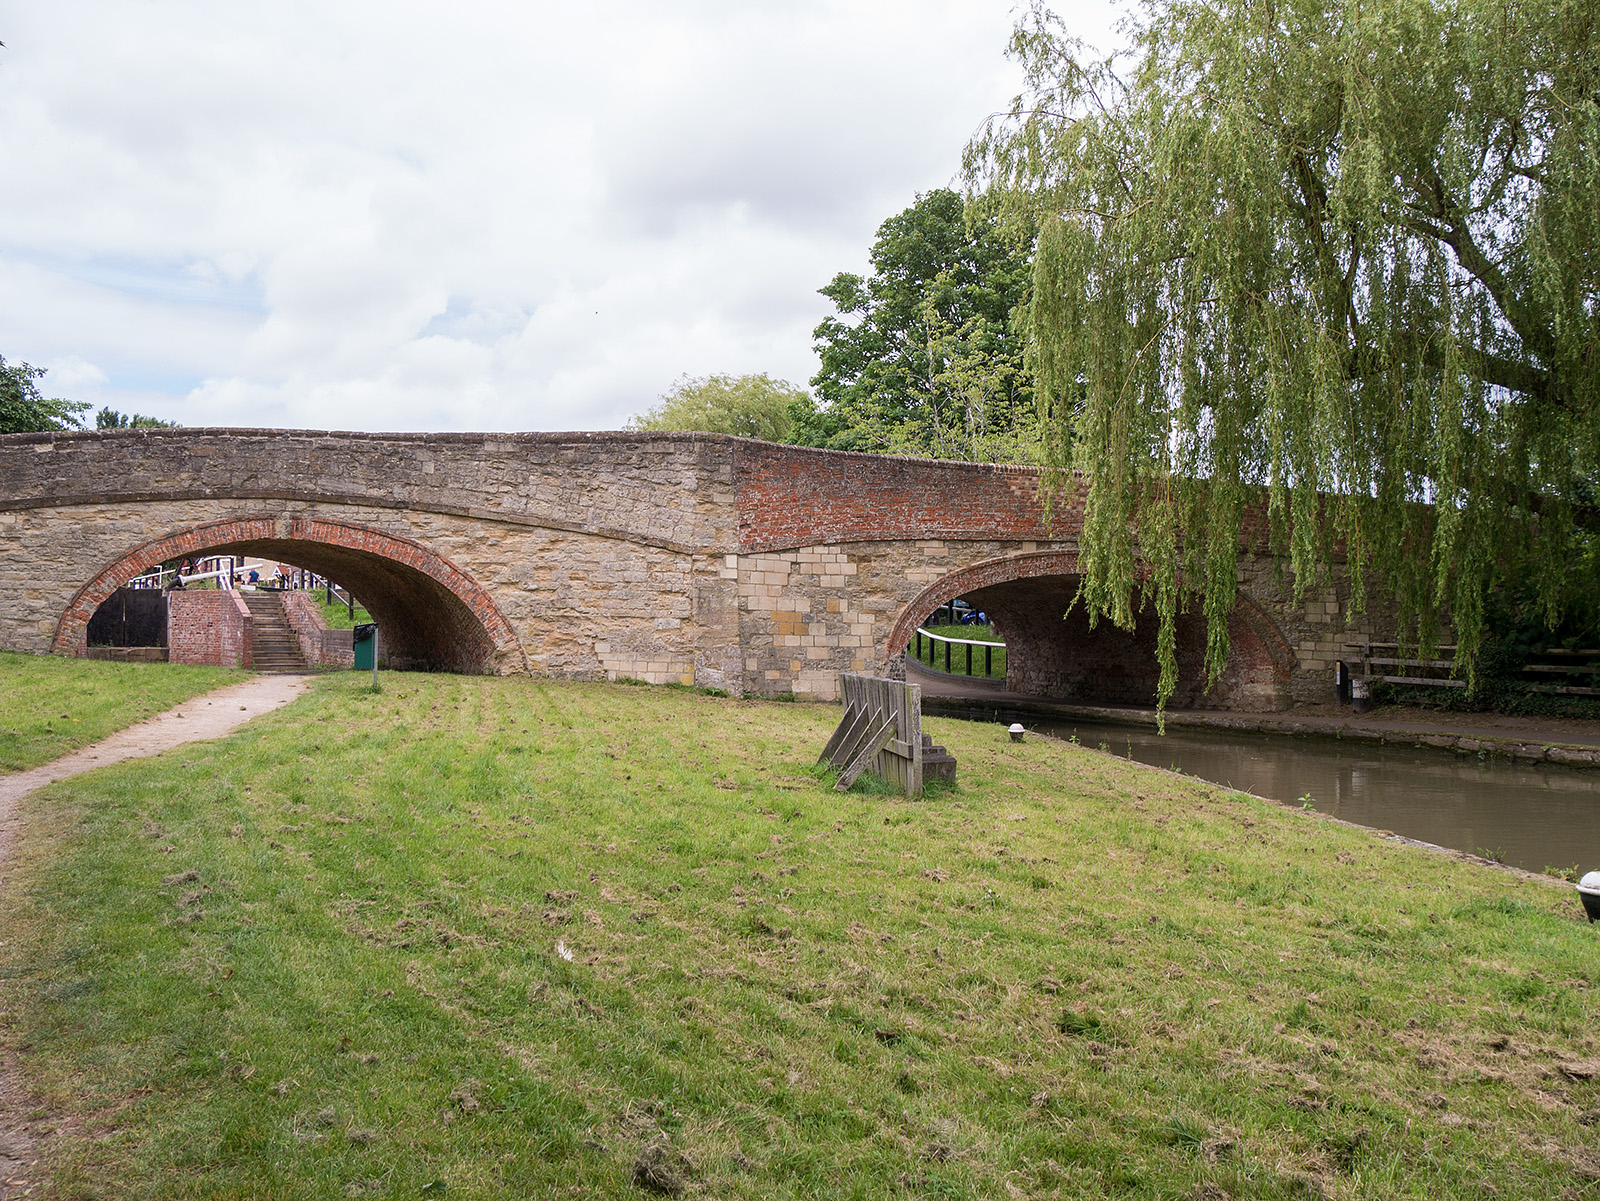 Double bridge at Stoke Bruerne - note the different constructions